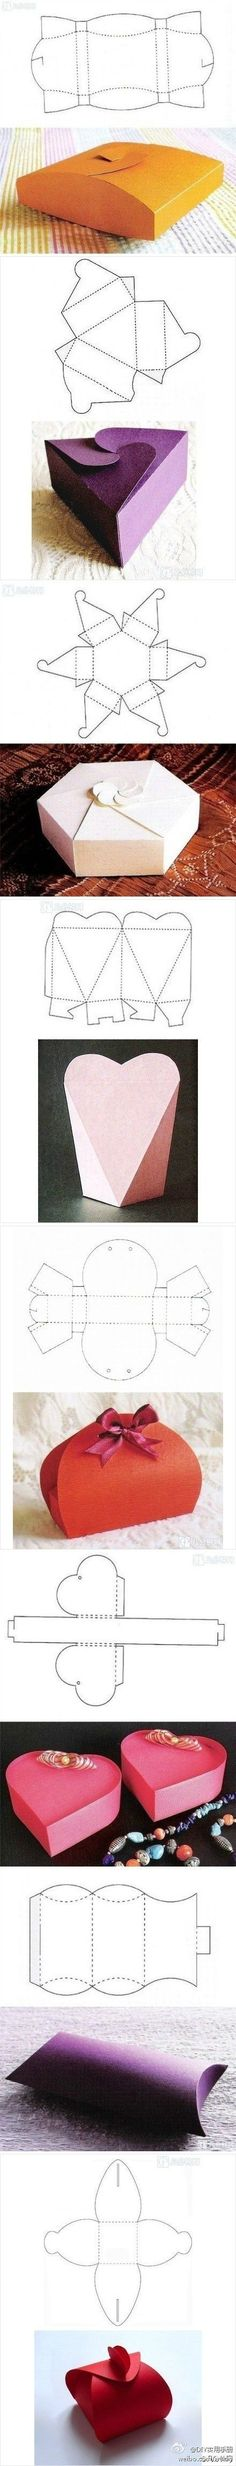 Homemade boxes good dIY gift box templates by jerry